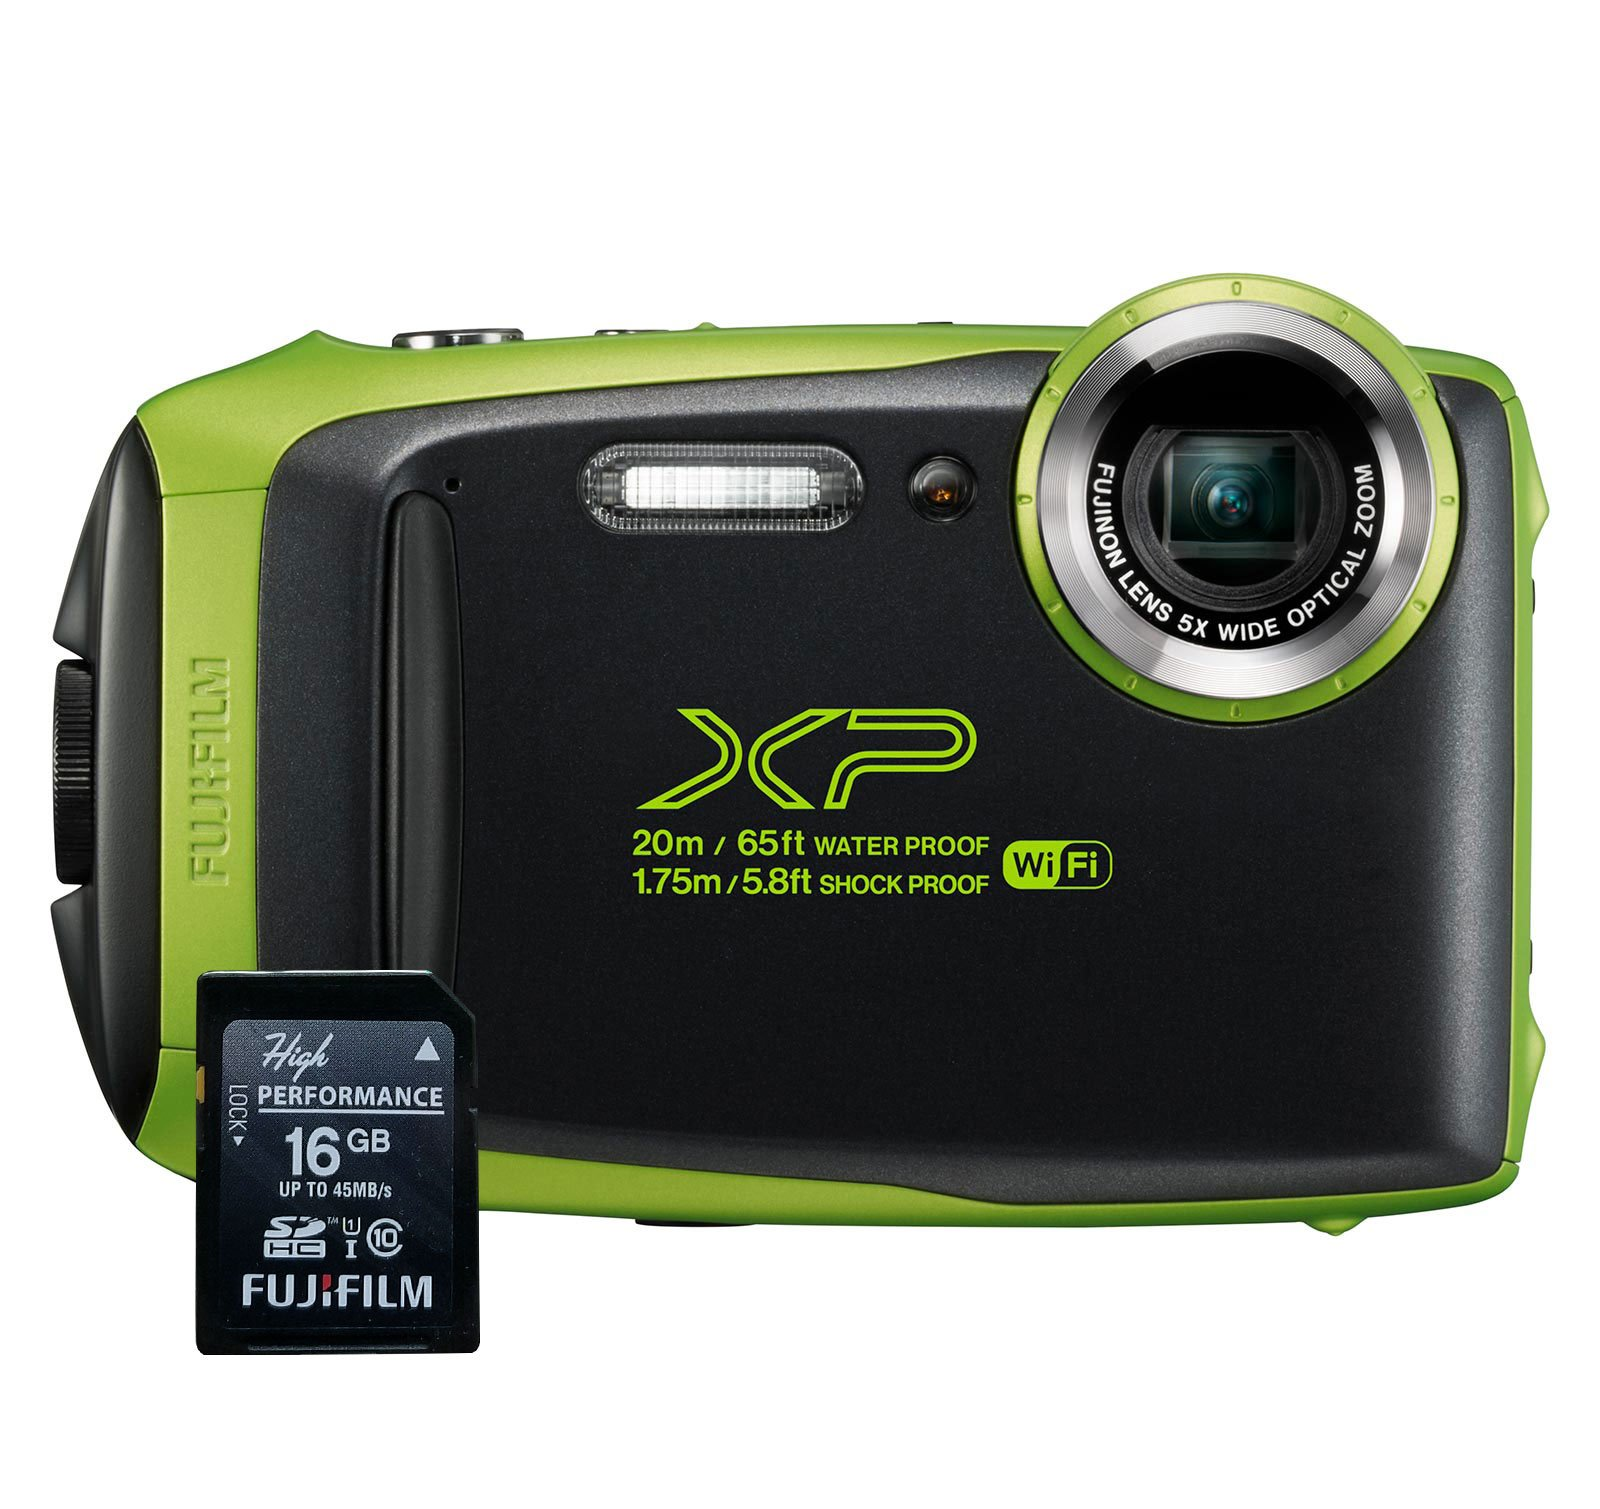 Fujifilm FinePix XP130 Waterproof Digital Camera w/16GB SD Card - Lime by Fujifilm